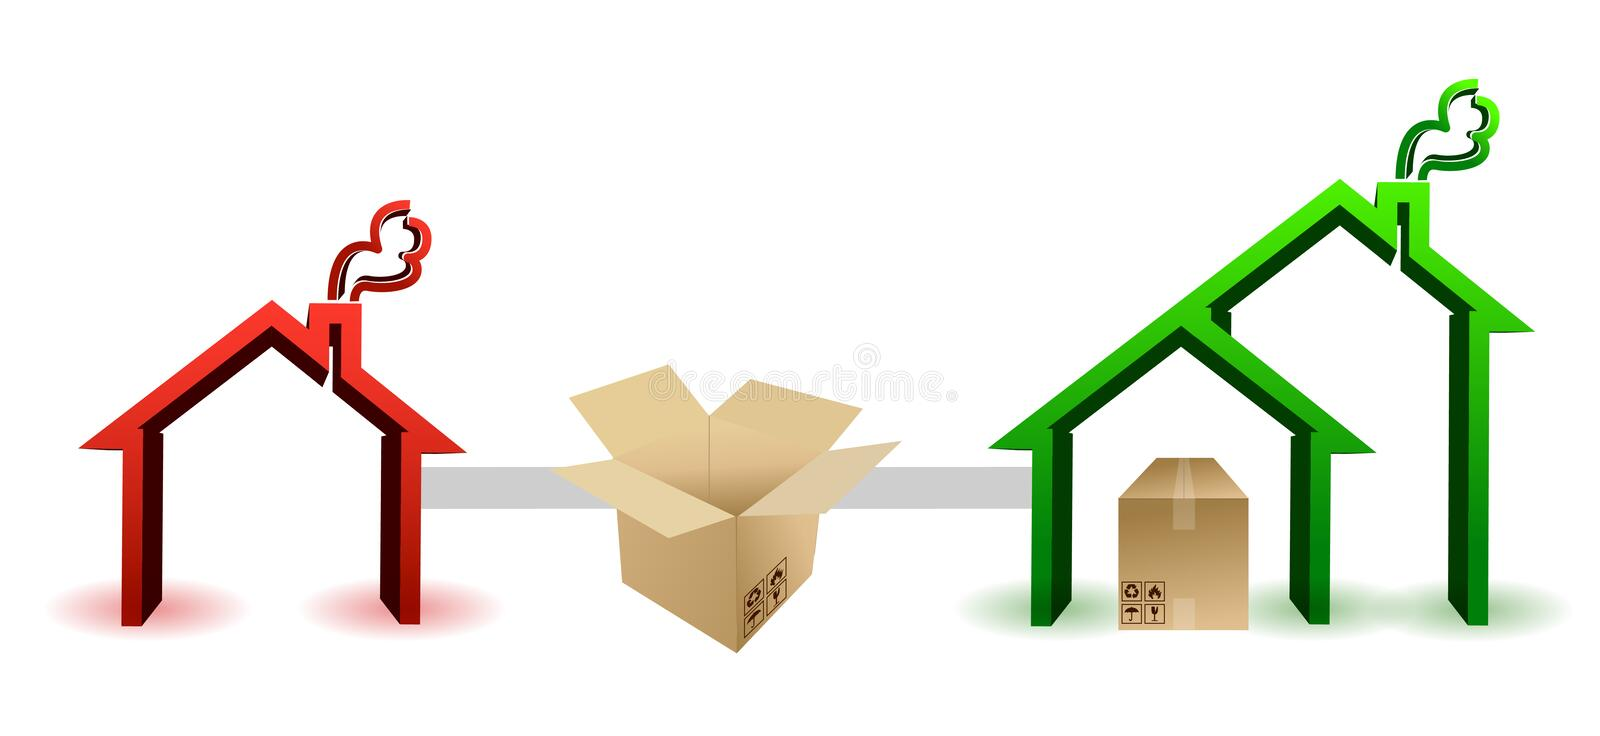 Moving concept vector illustration